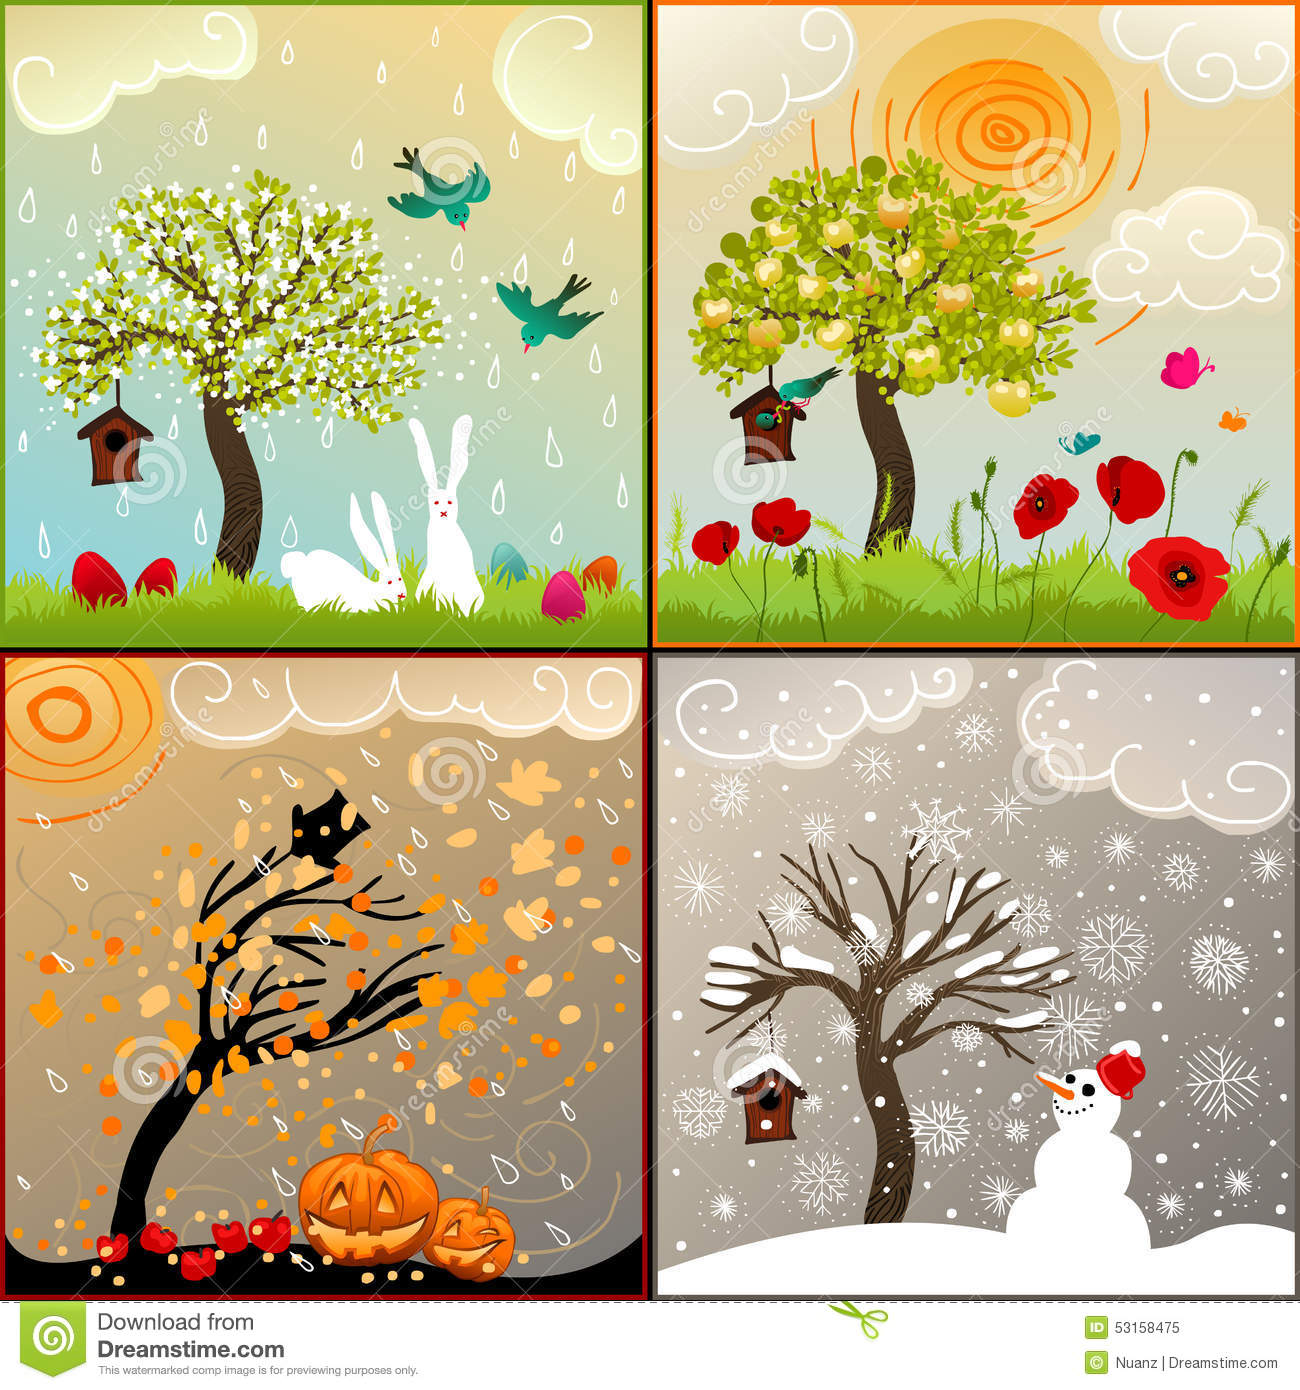 Four Seasons Themed Illustrations Set With Apple Tree